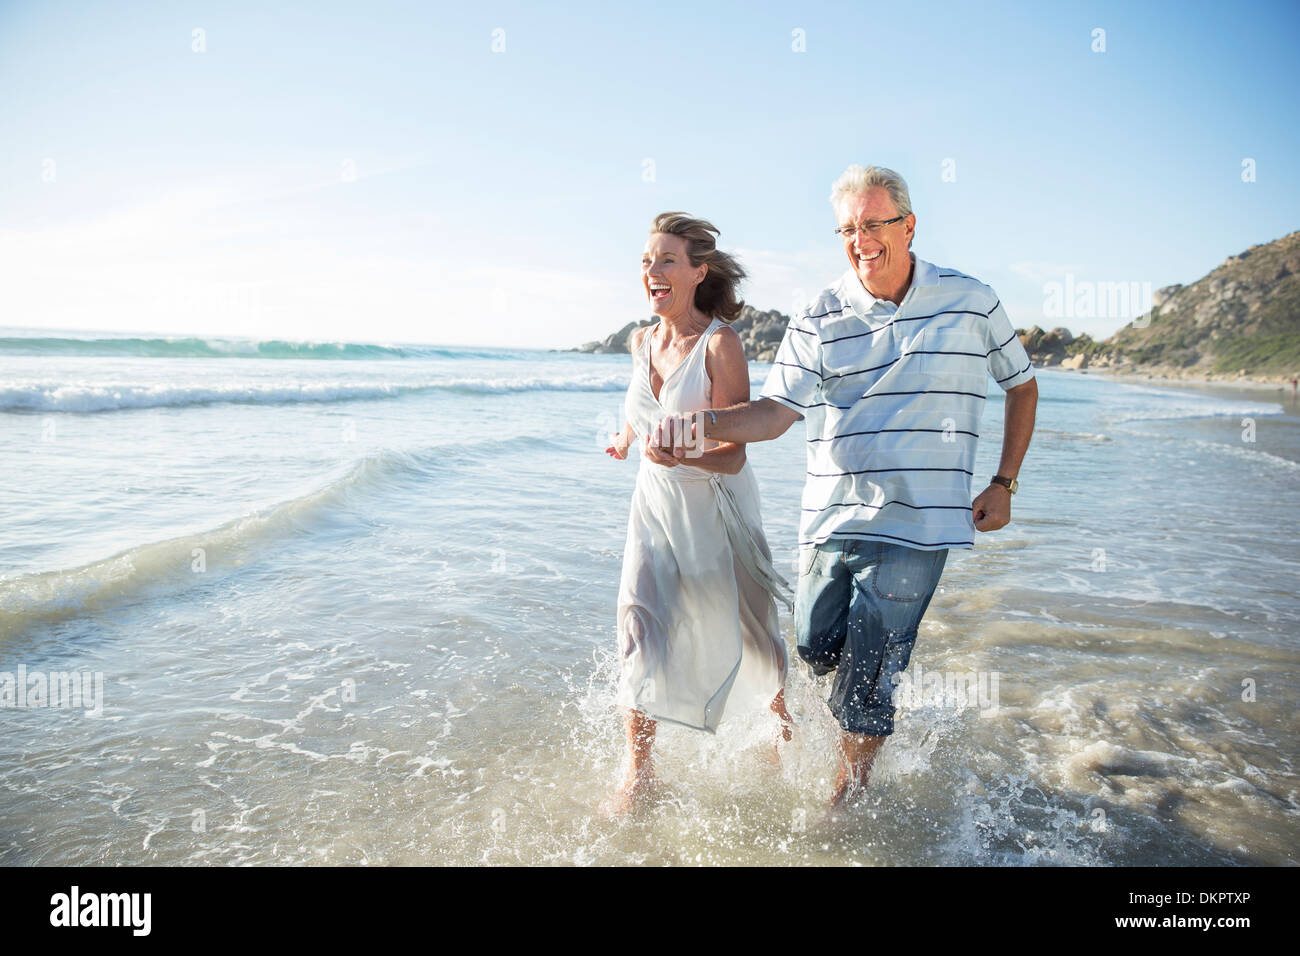 Older couple playing in waves on beach - Stock Image